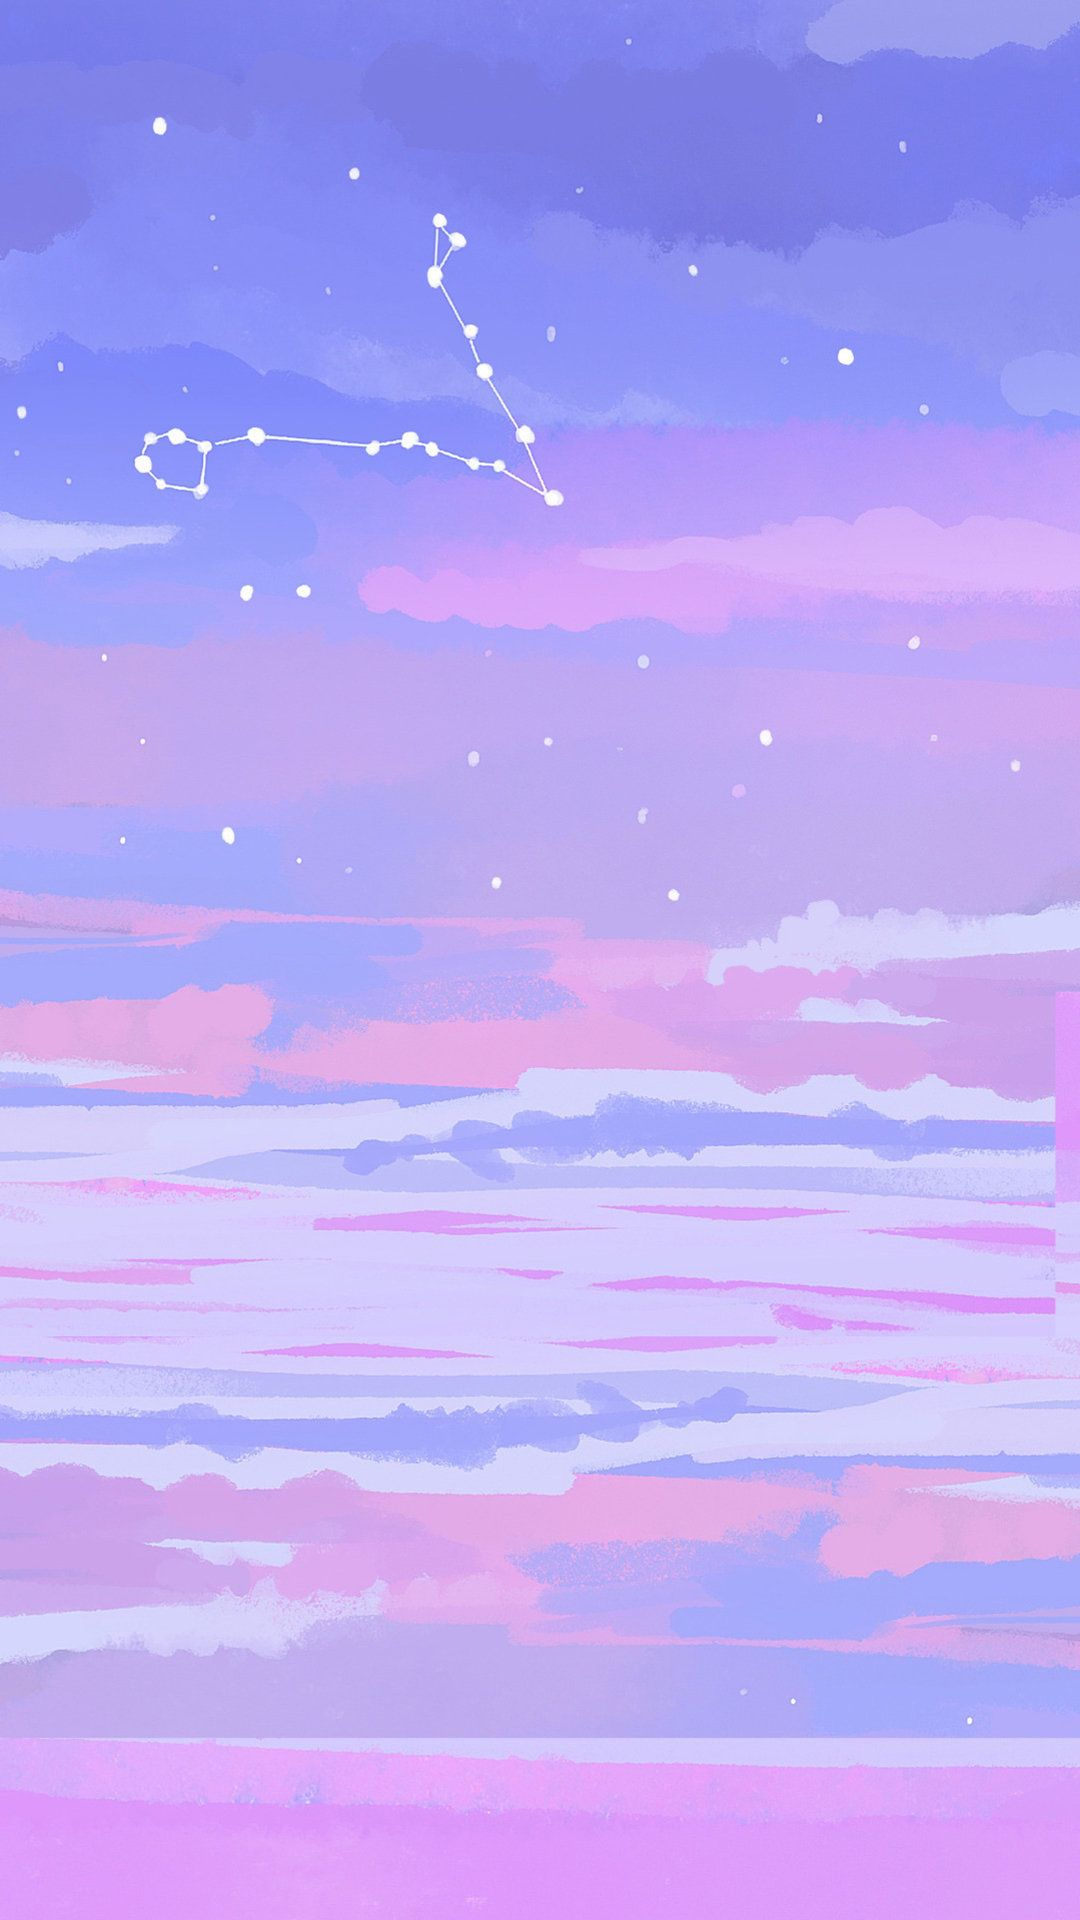 Phone Wallpaper Background Star Starry Pictures Starry Stars Beauty In 2020 Pink Wallpaper Anime Cute Pastel Wallpaper Galaxy Phone Wallpaper